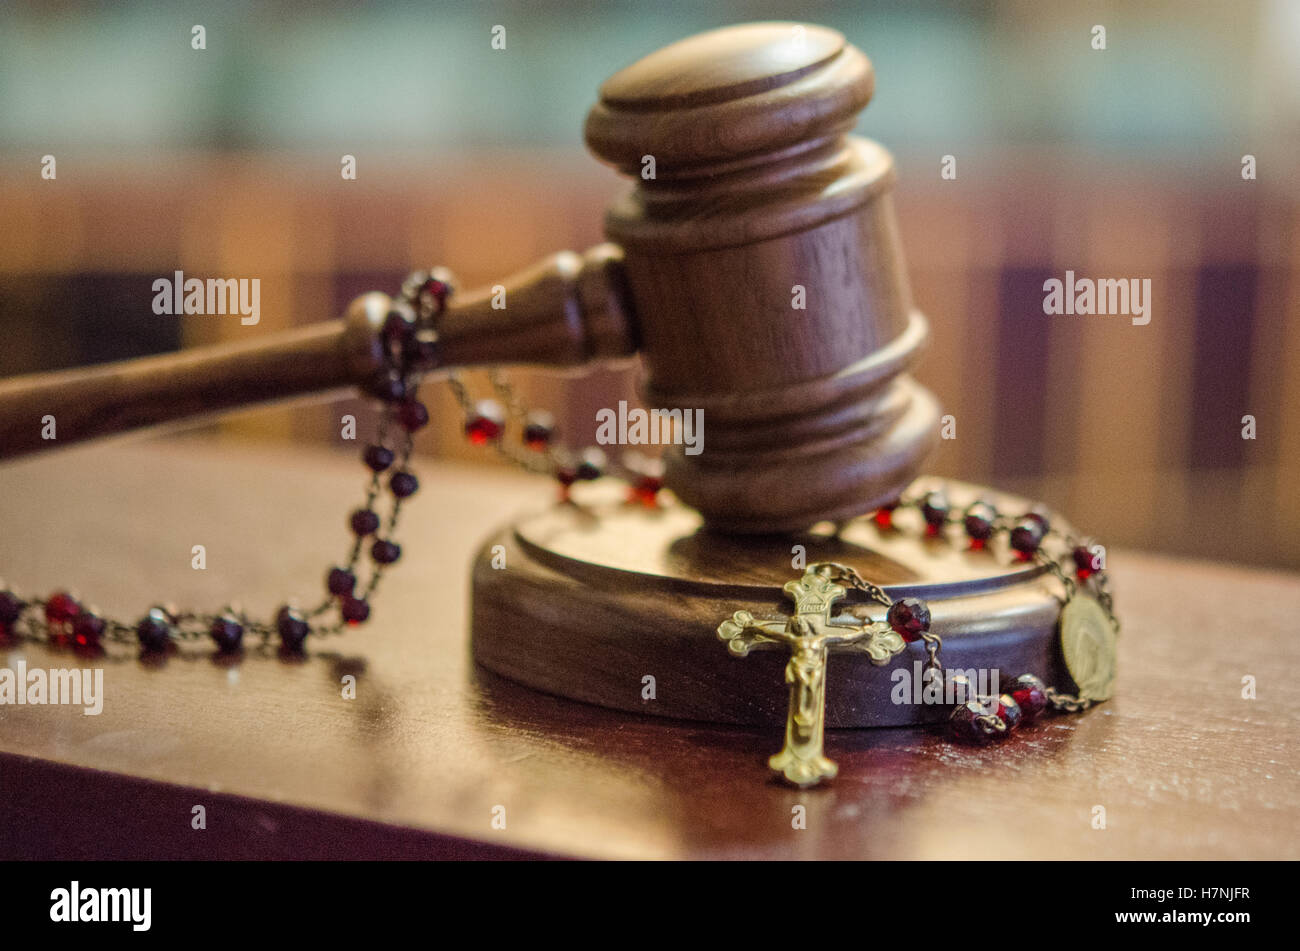 Church and State concept photograph, Gavel with Rosary Beads in Courtroom with jury seats in the background Stock Photo